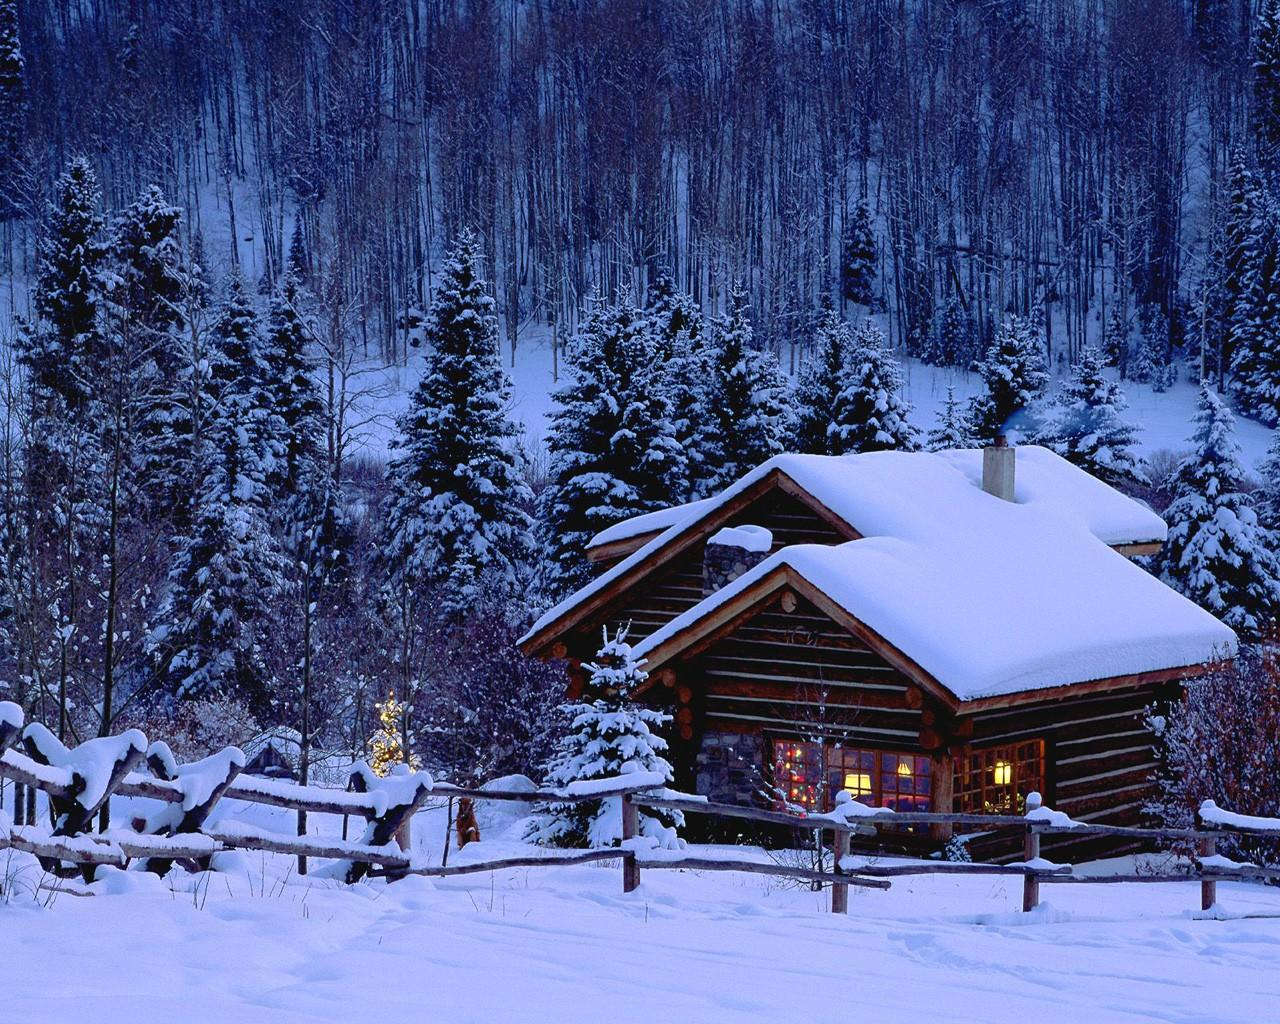 Snow falling widescreen high definition wallpaper download snow photo free